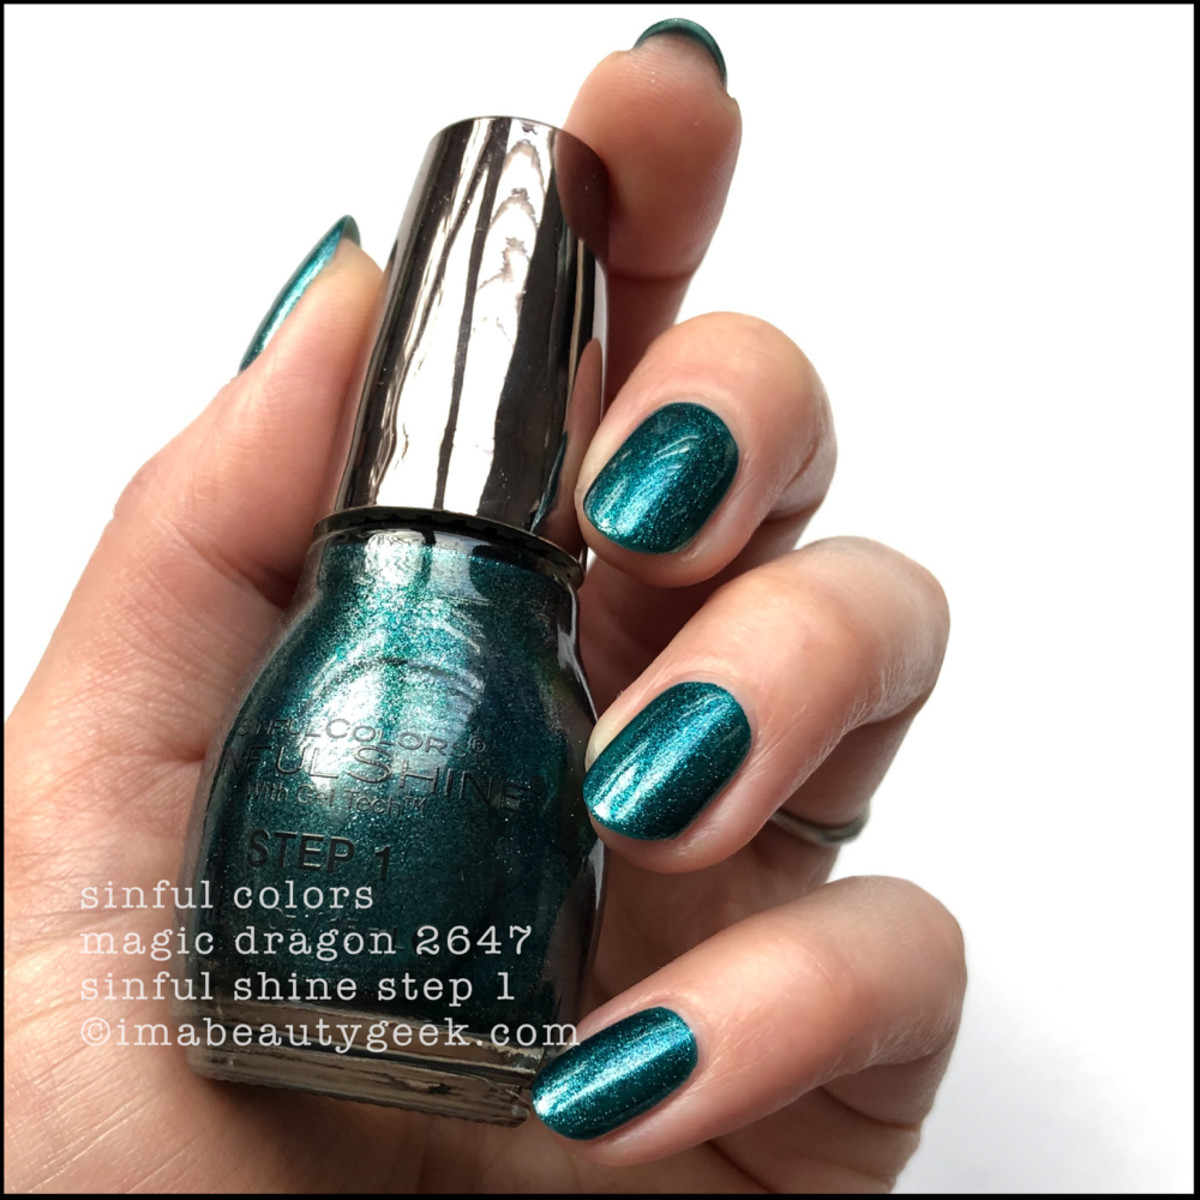 Sinful Colors Magic Dragon - Sinful Colors Swatches Sinful Shine 2019